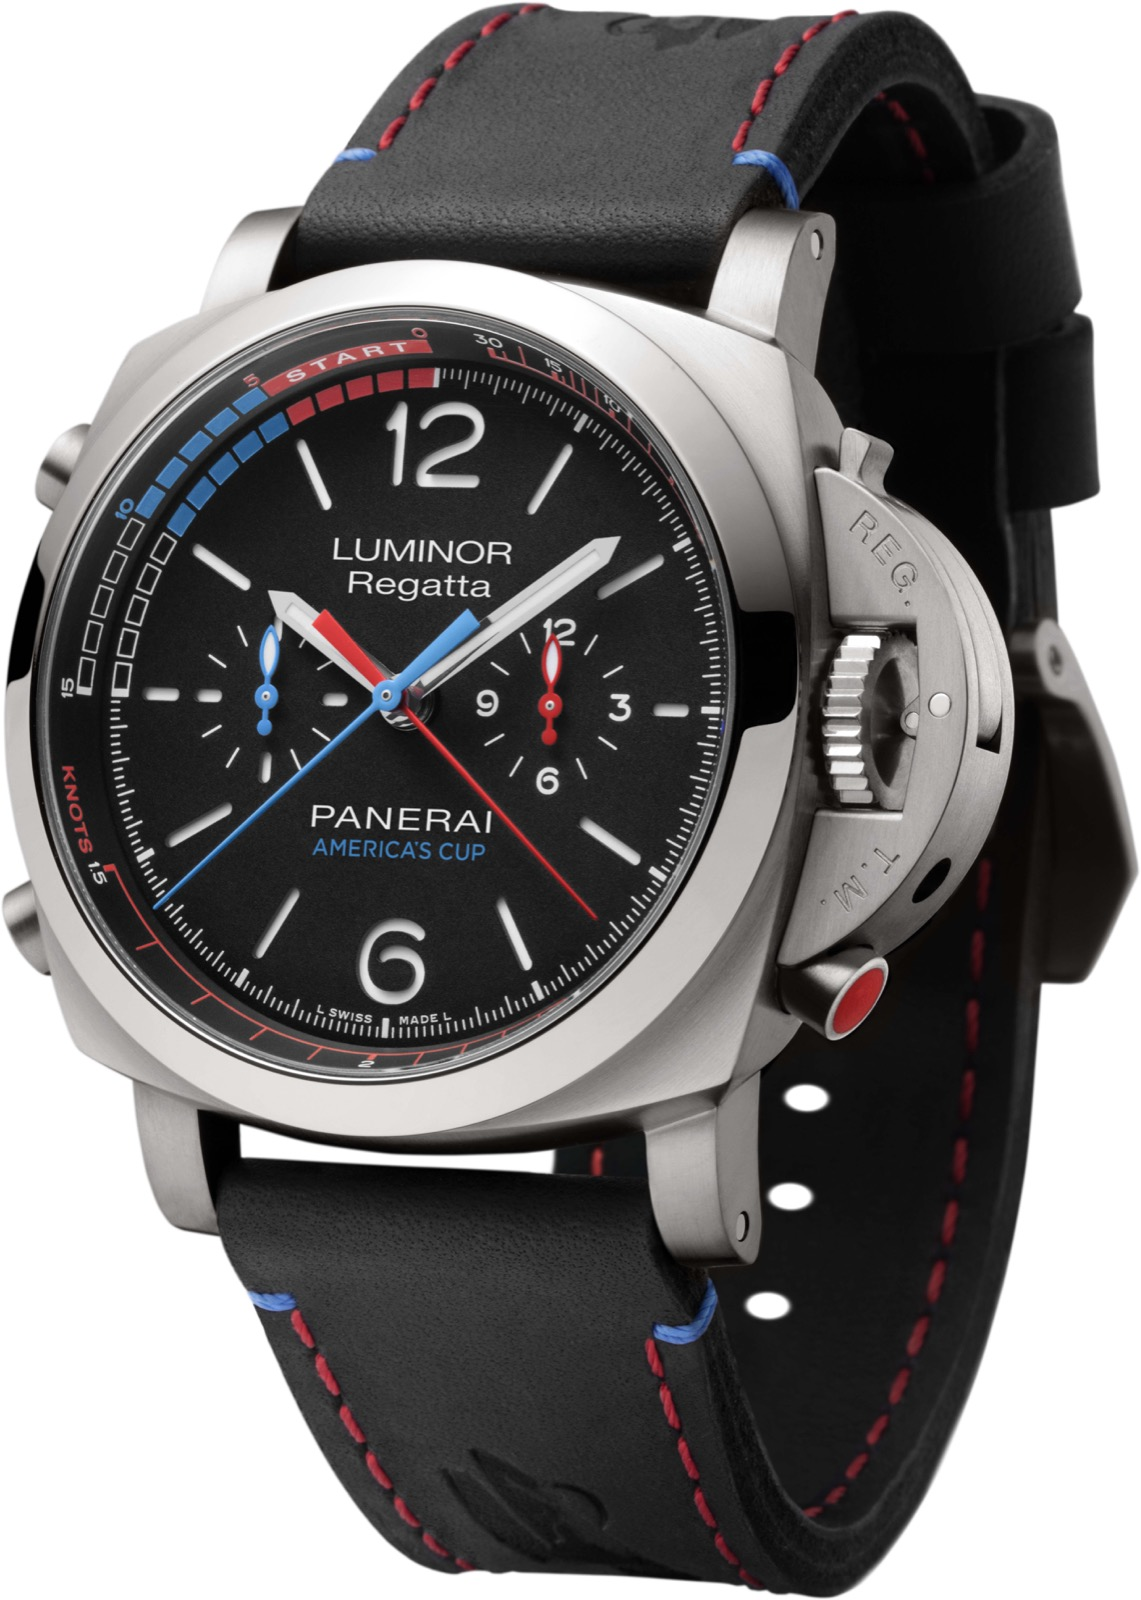 PANERAI LUMINOR 1950 REGATTA ORACLE TEAM USA 3 DAYS CHRONO FLYBACK AUTOMATIC TITANIO (PAM726) – 47mm